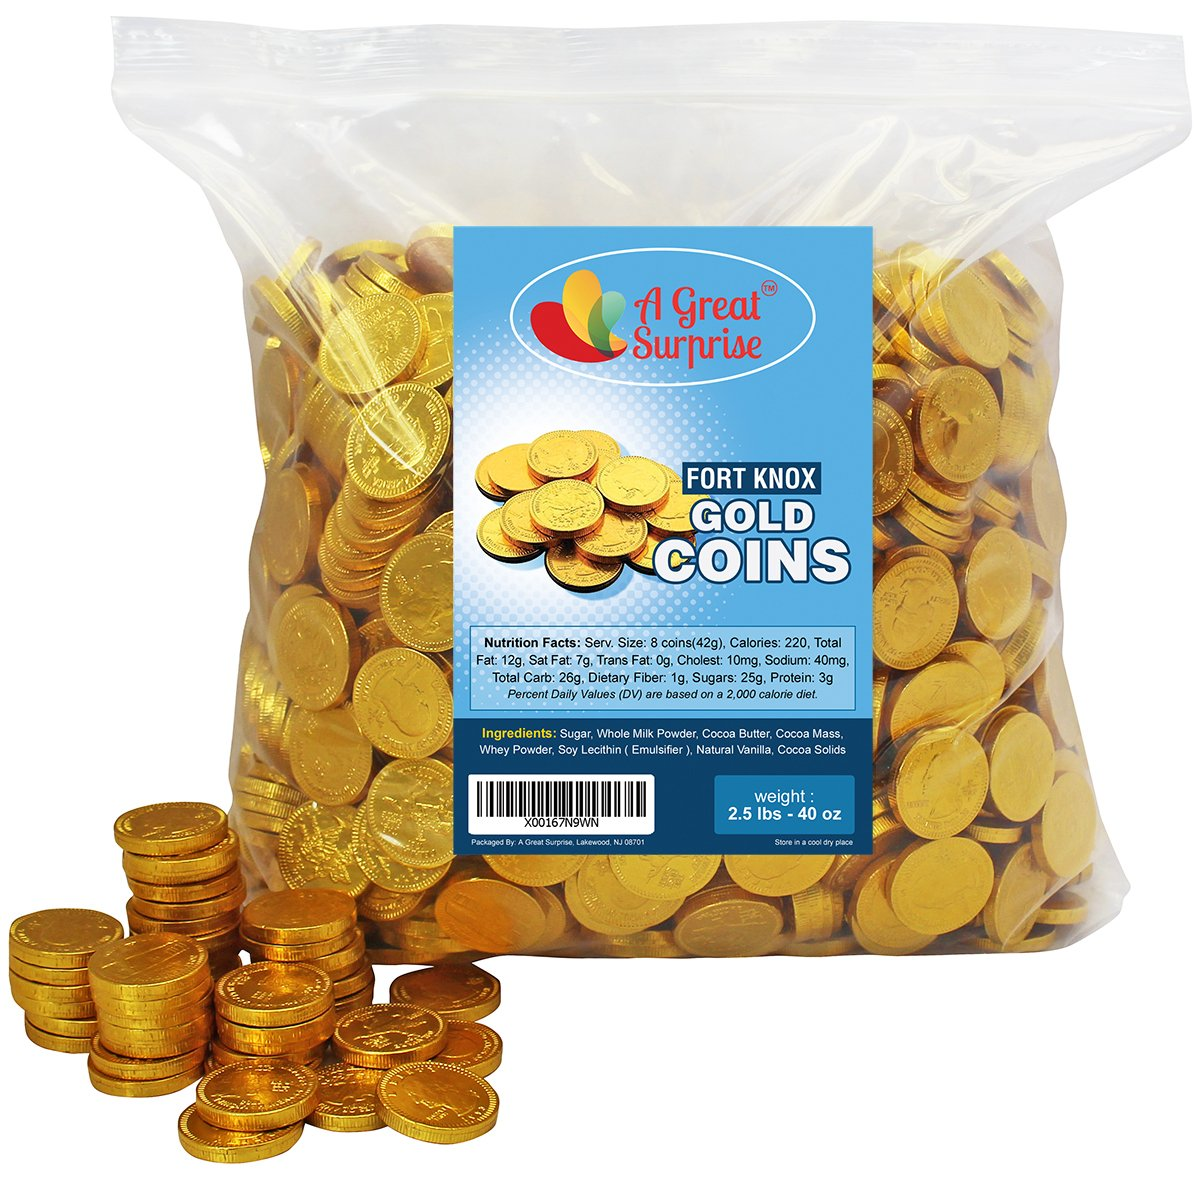 Chocolate Gold Coins - Fort Knox Chocolate Coins - Gold Candy - Milk Chocolate 2.5 LB Bulk Candy by A Great Surprise